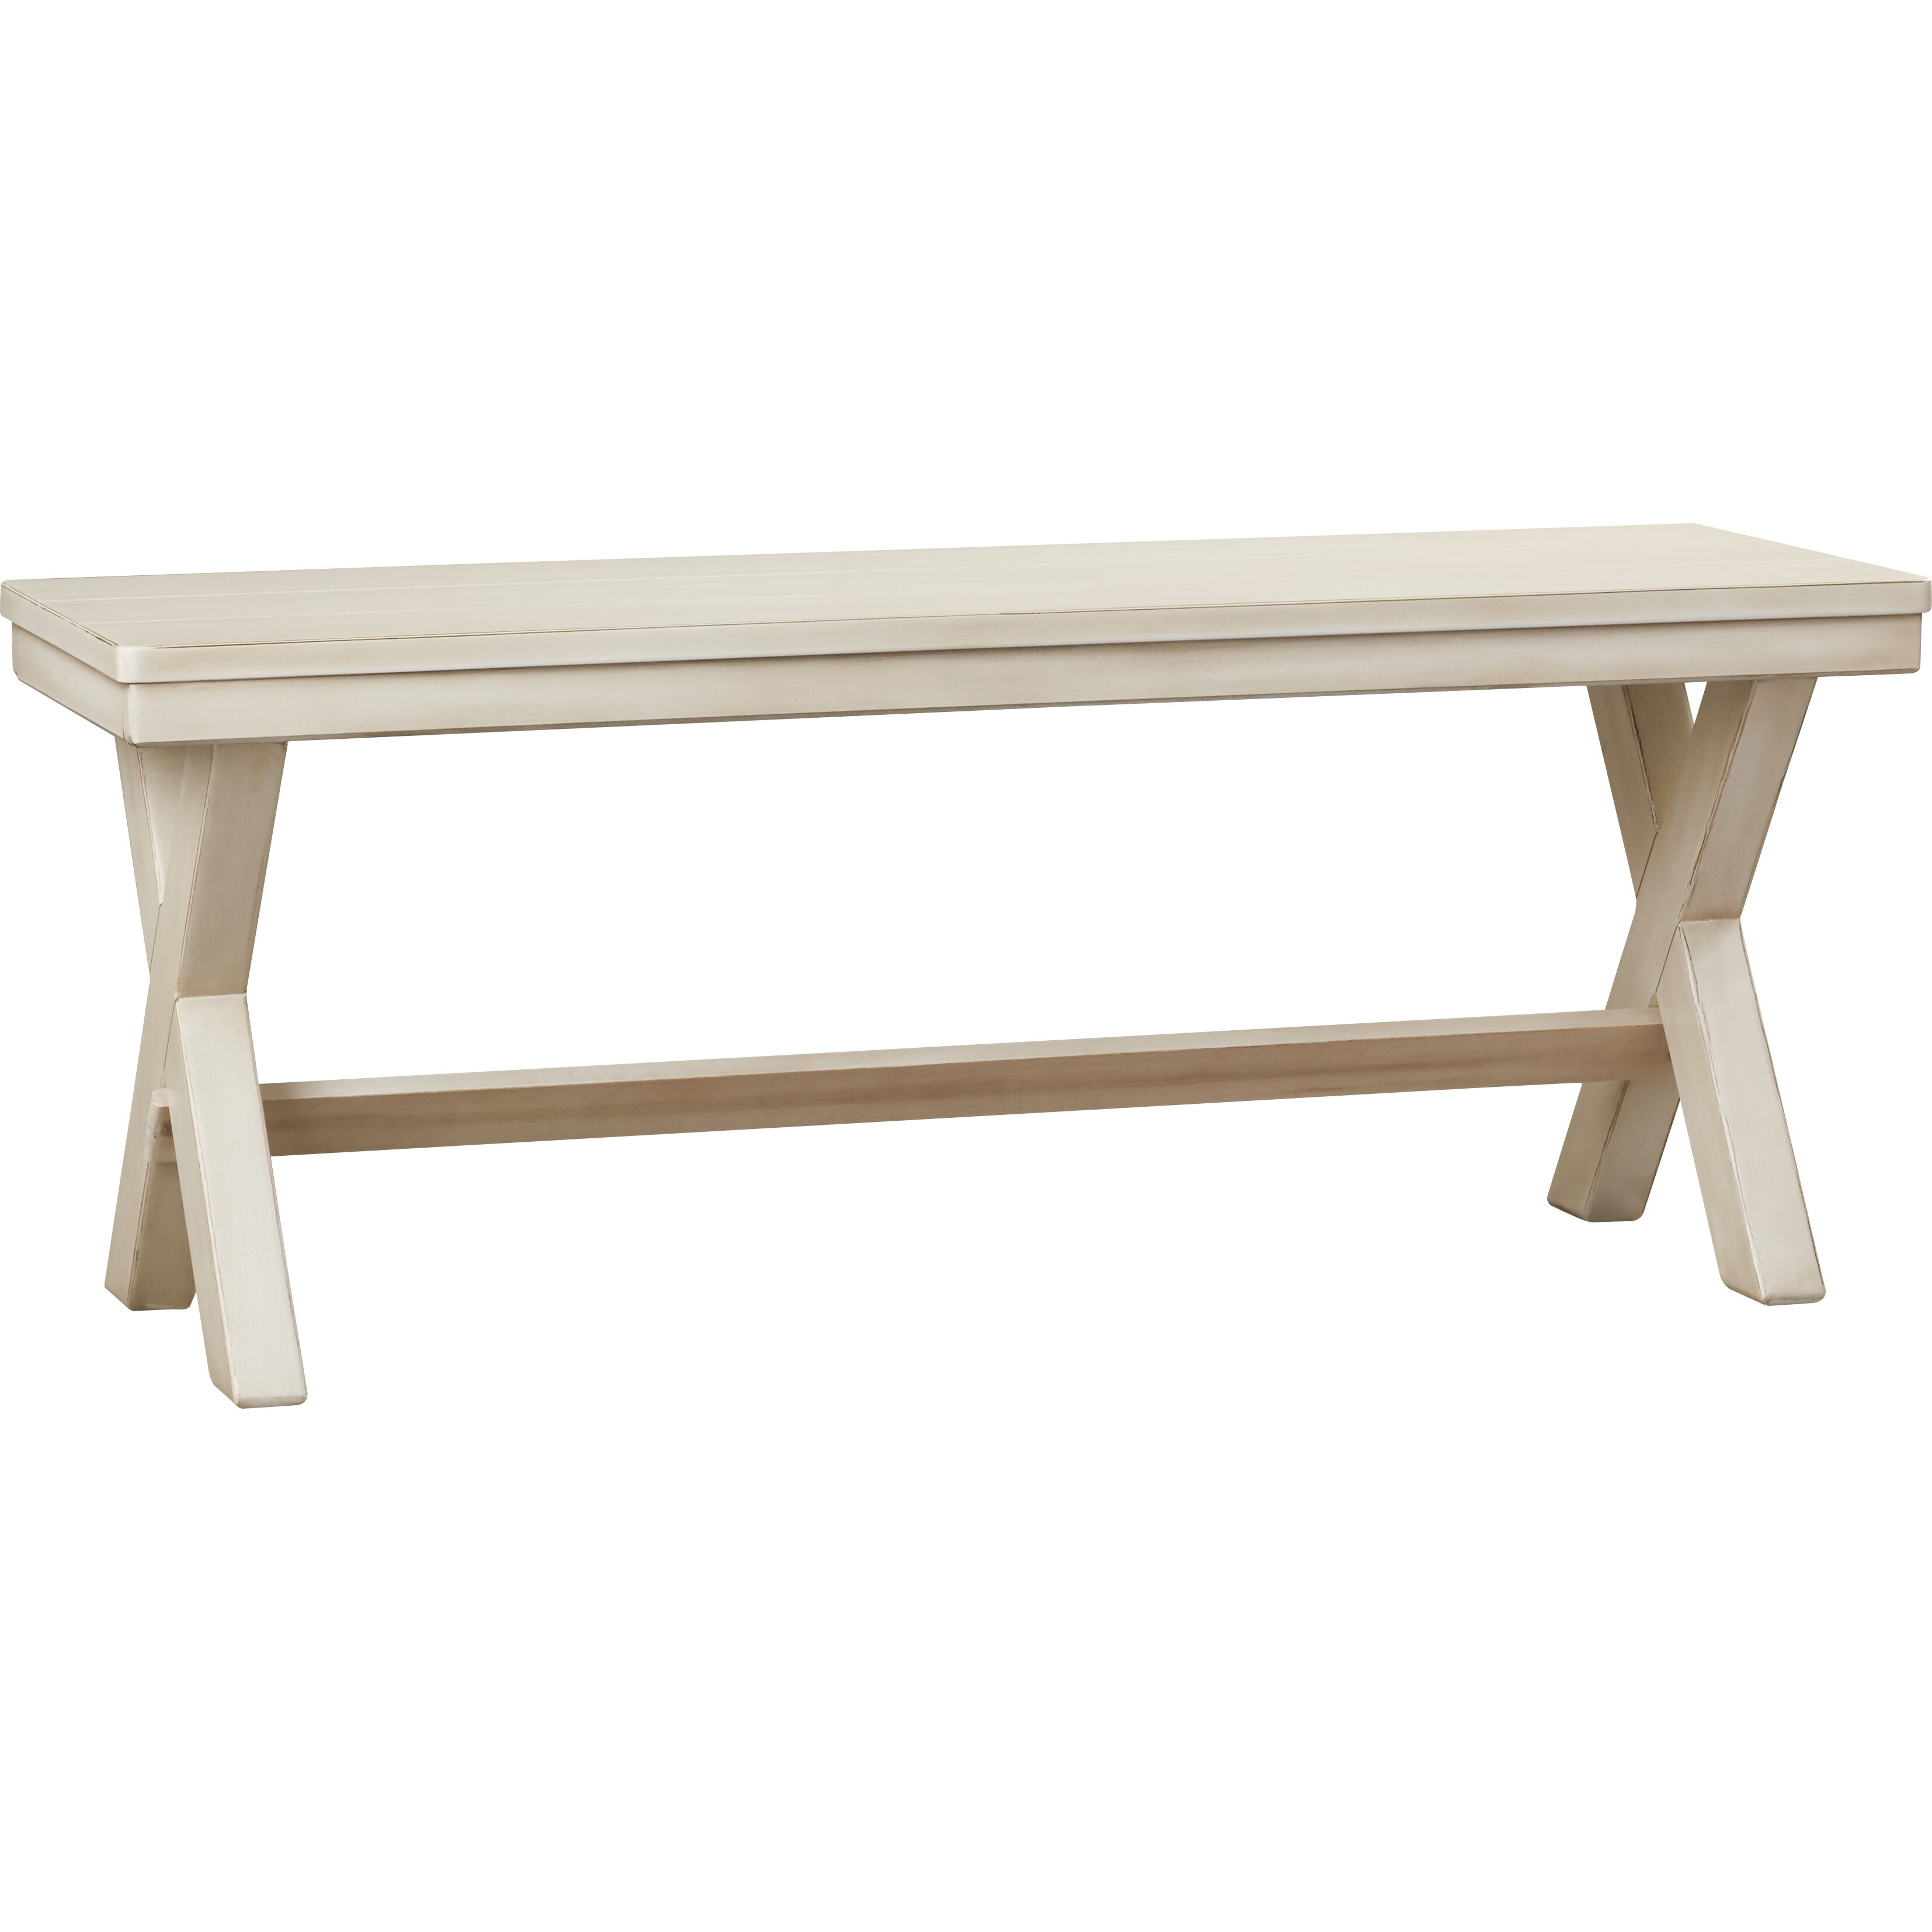 Beachcrest Home Ivanhoe Upholstered Kitchen Bench Wayfair